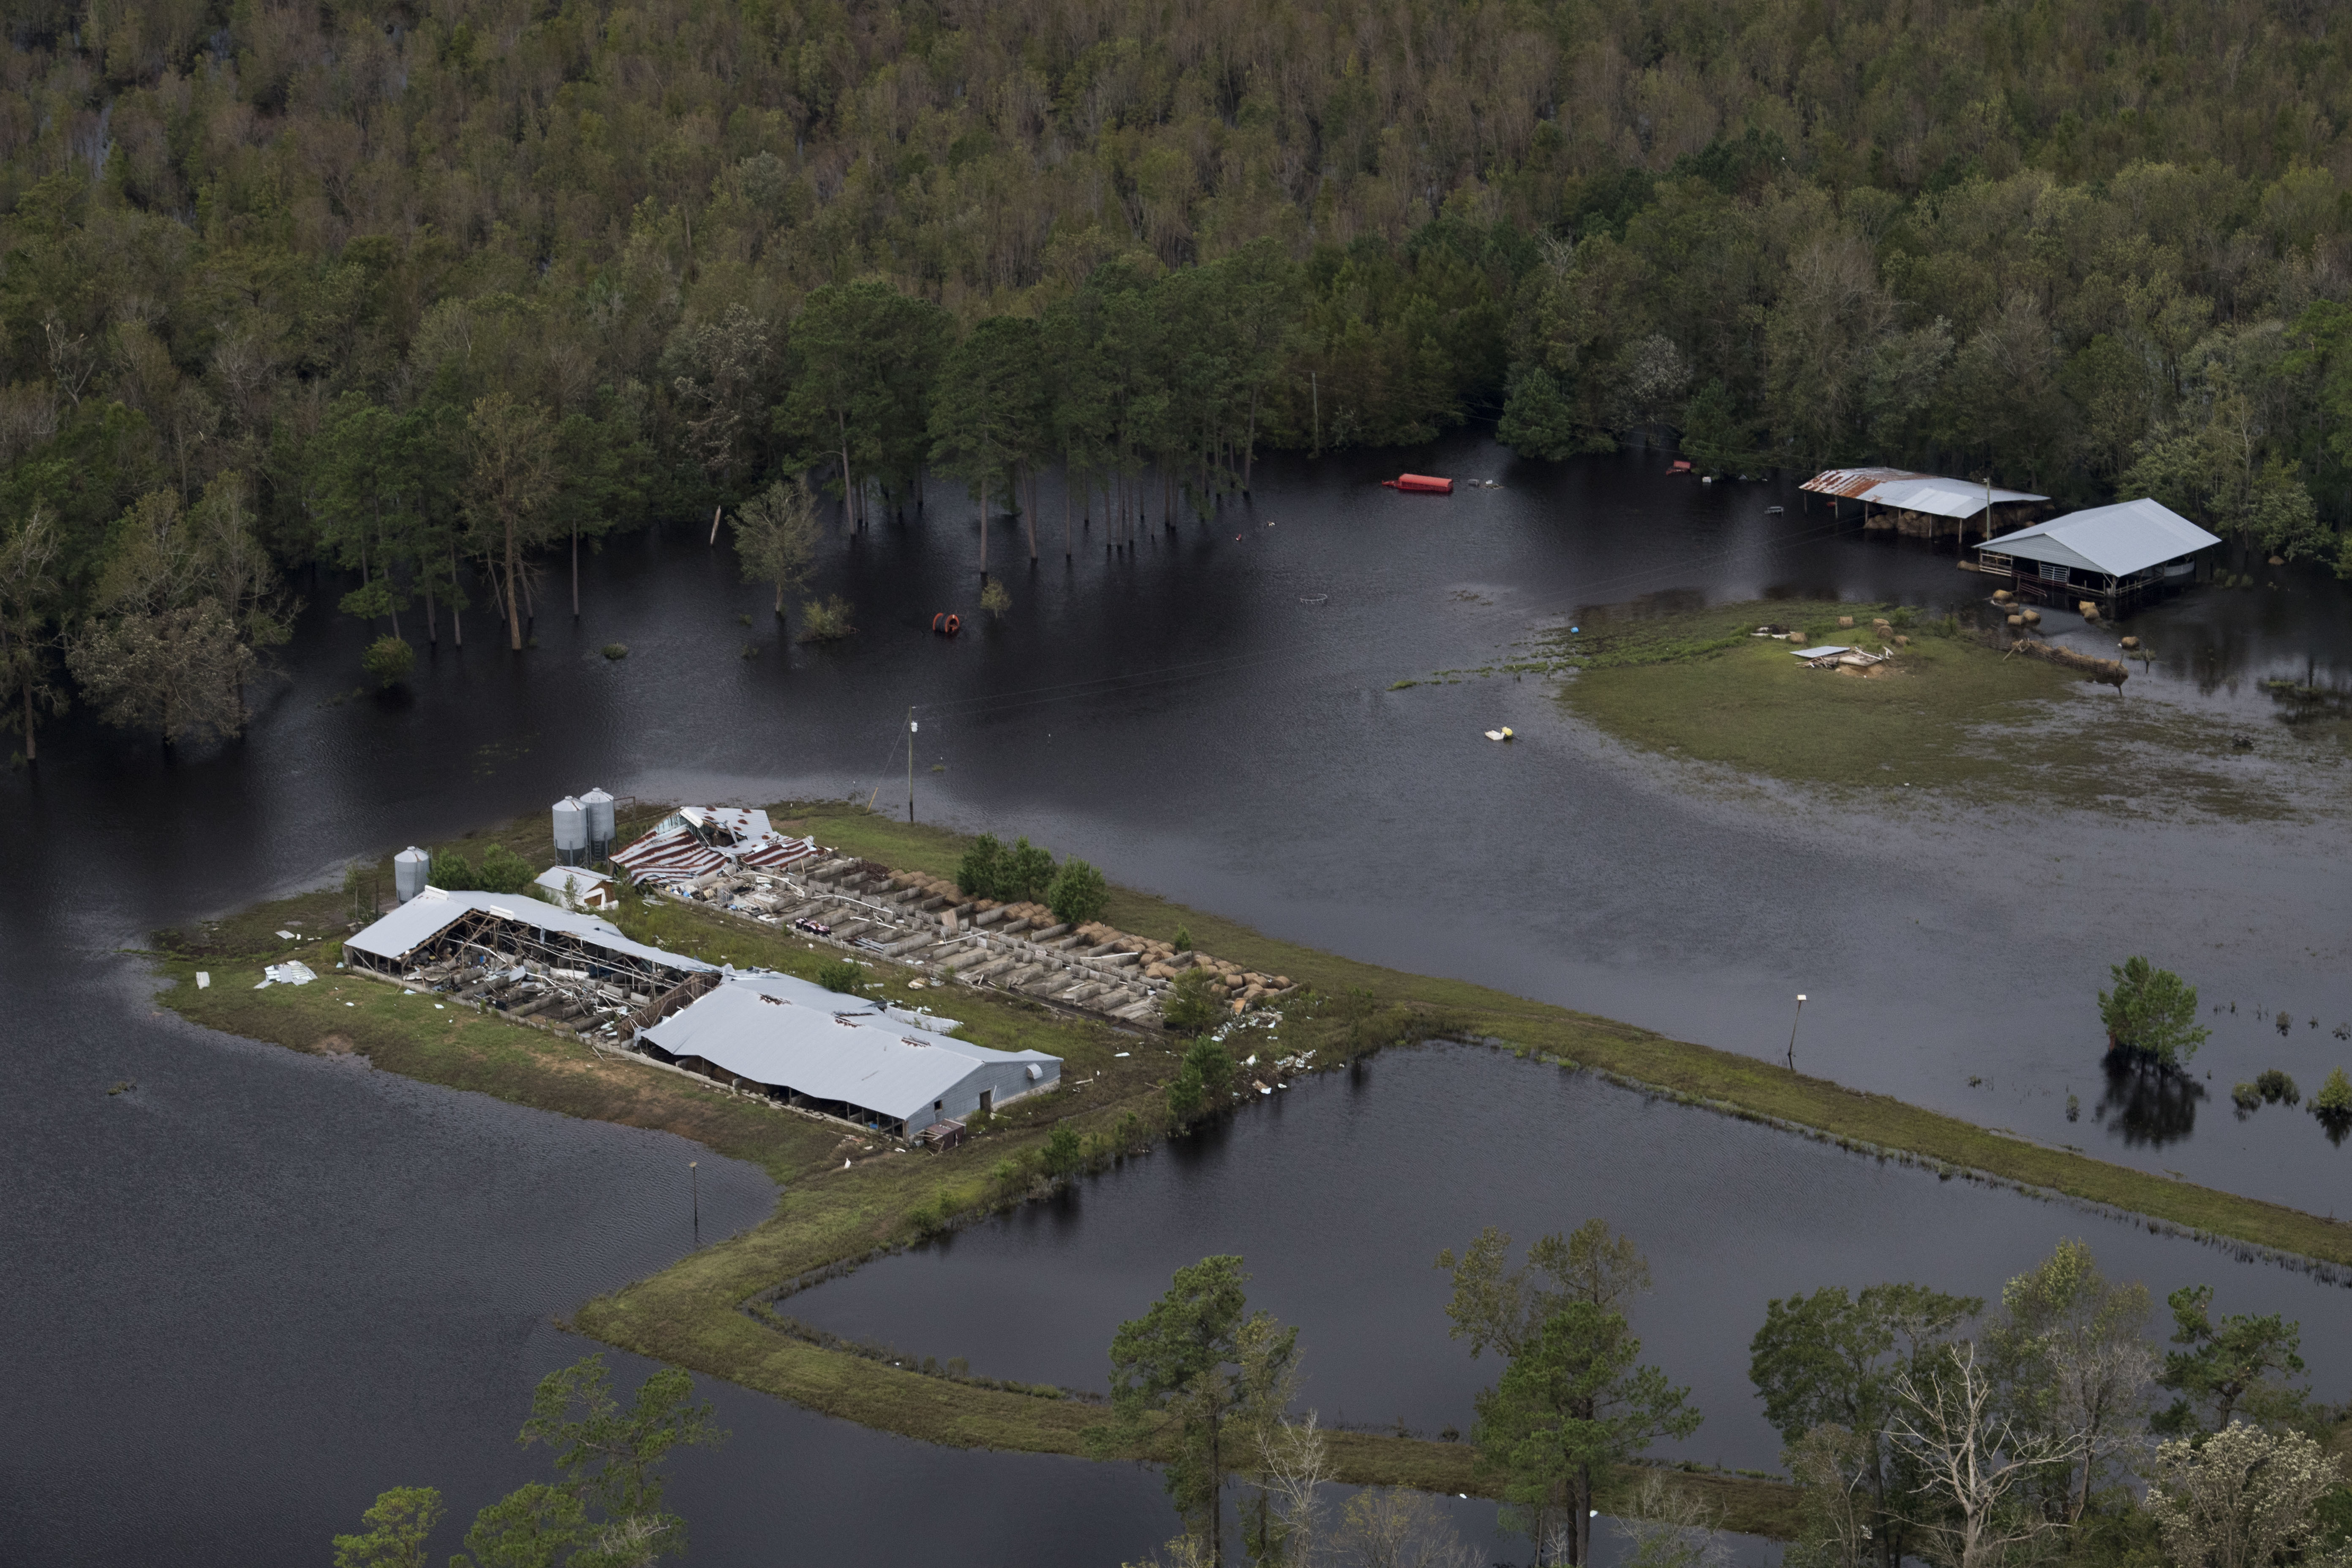 Flooding and wind damage from Hurricane Florence is seen on farmland near Half Moon, NC on Sept. 17, 2018.